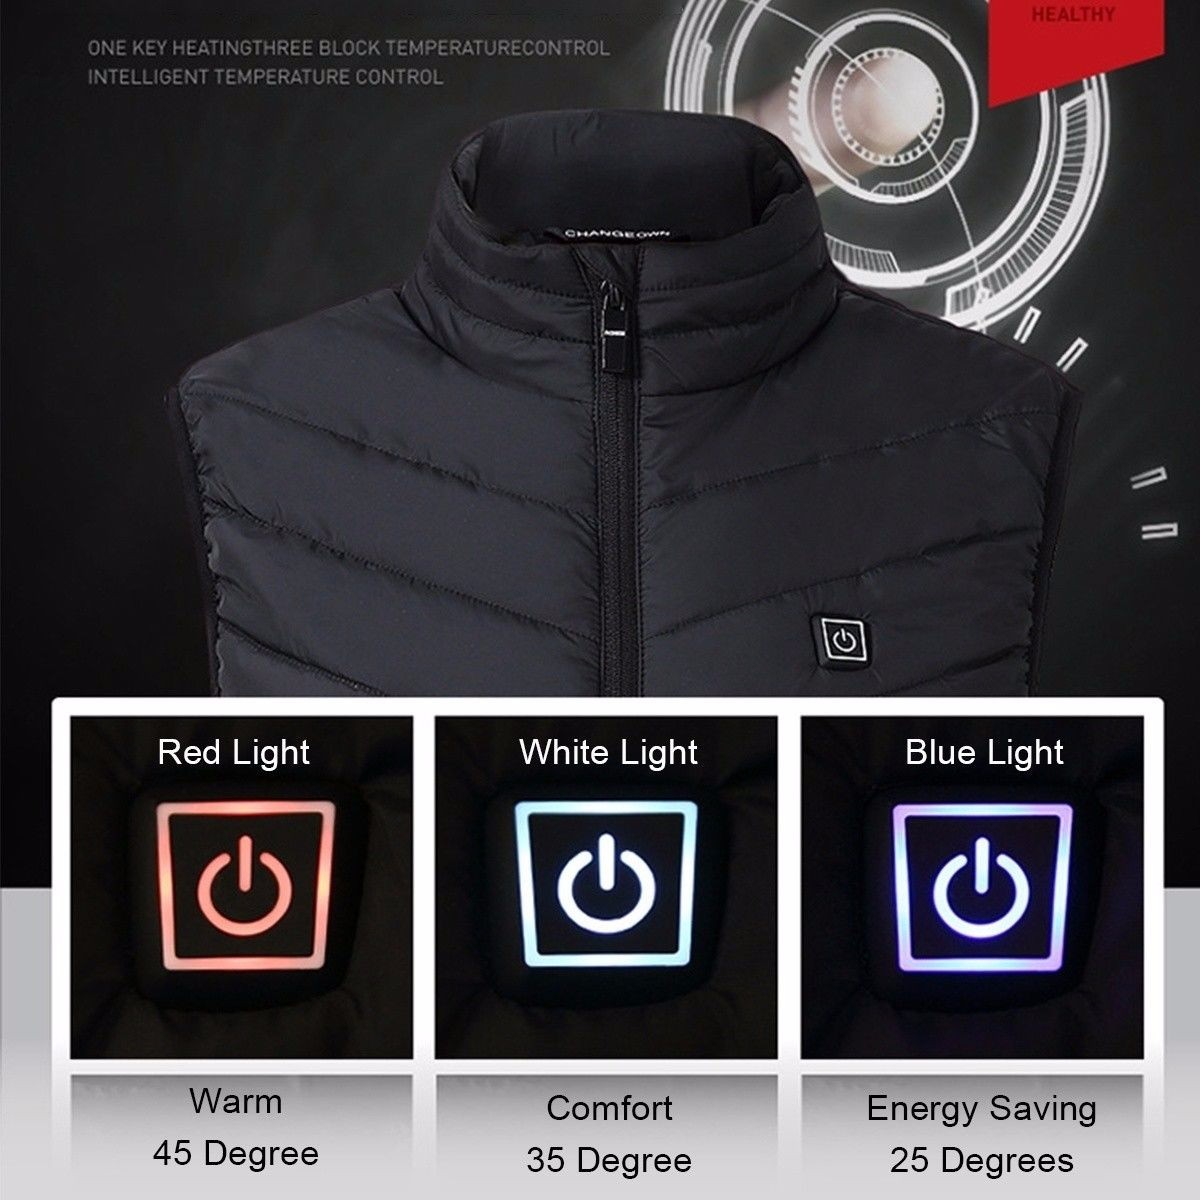 2019 New Women Man Winter Vest USB Electric Heated Vest Thermal Waistcost Sleeveless Vest Jacket Clothing For Outdoor Workout